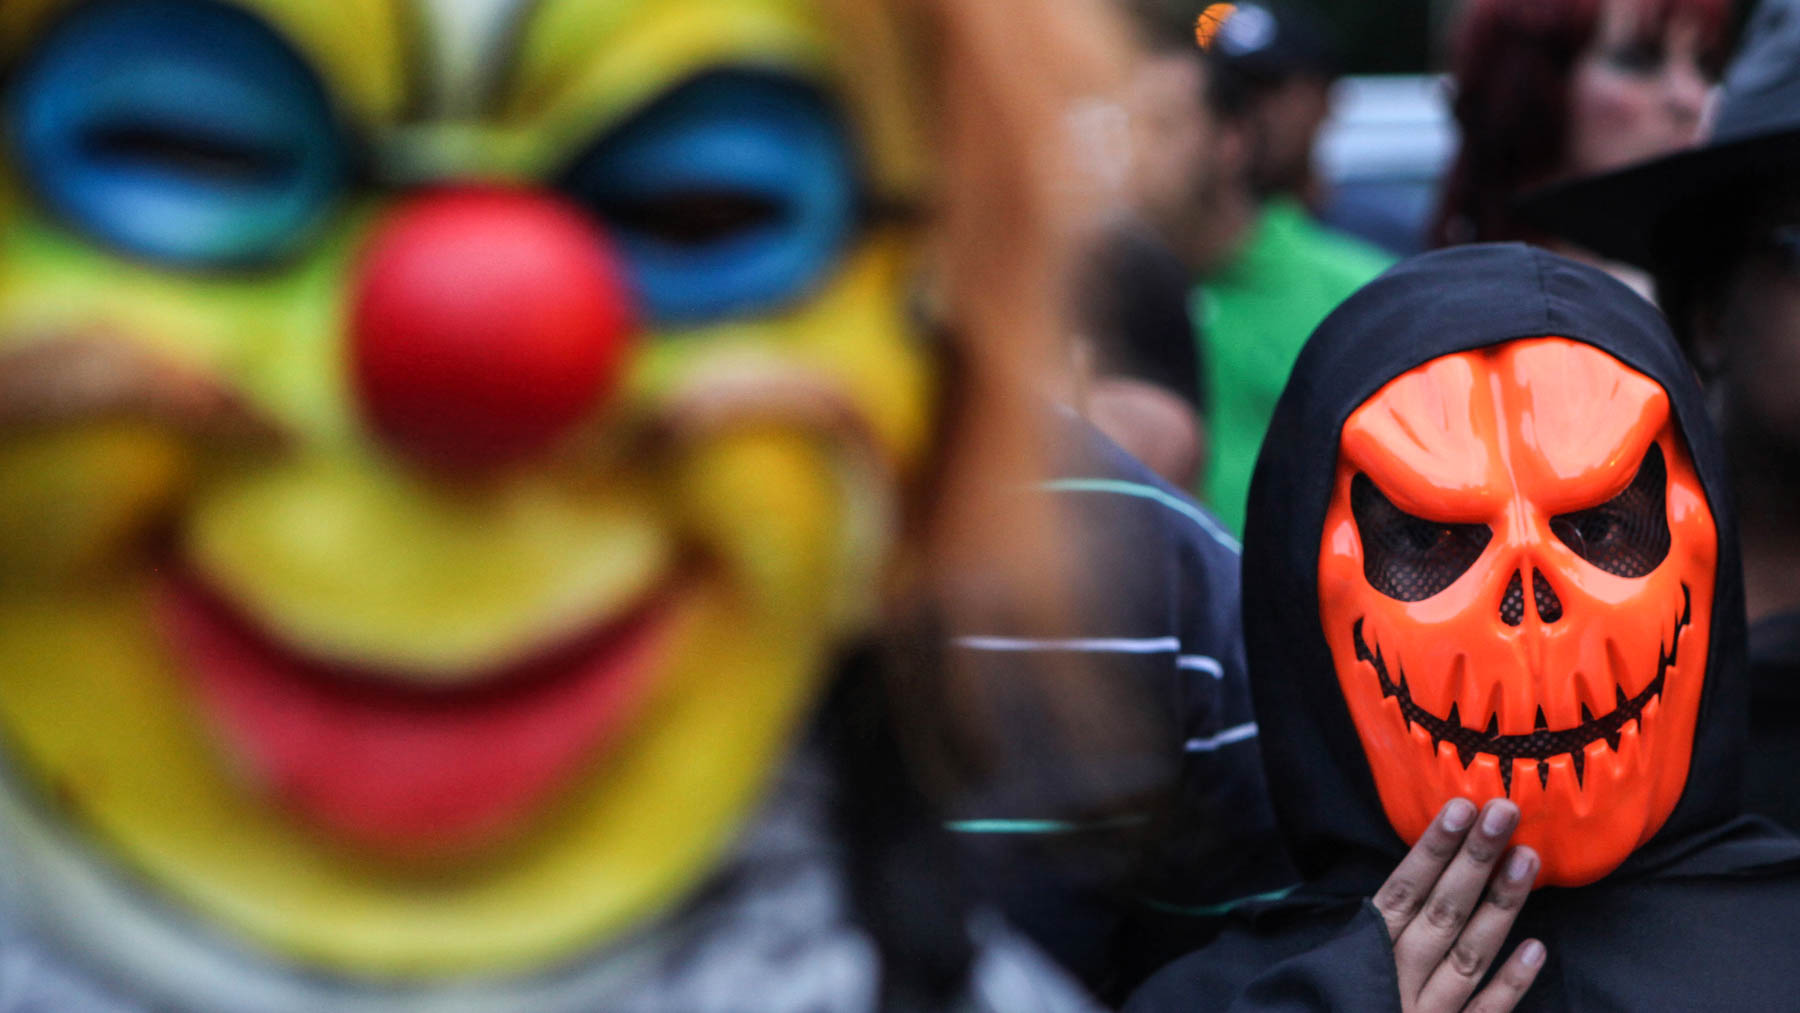 People wearing brightly colored masks (© AP Images)